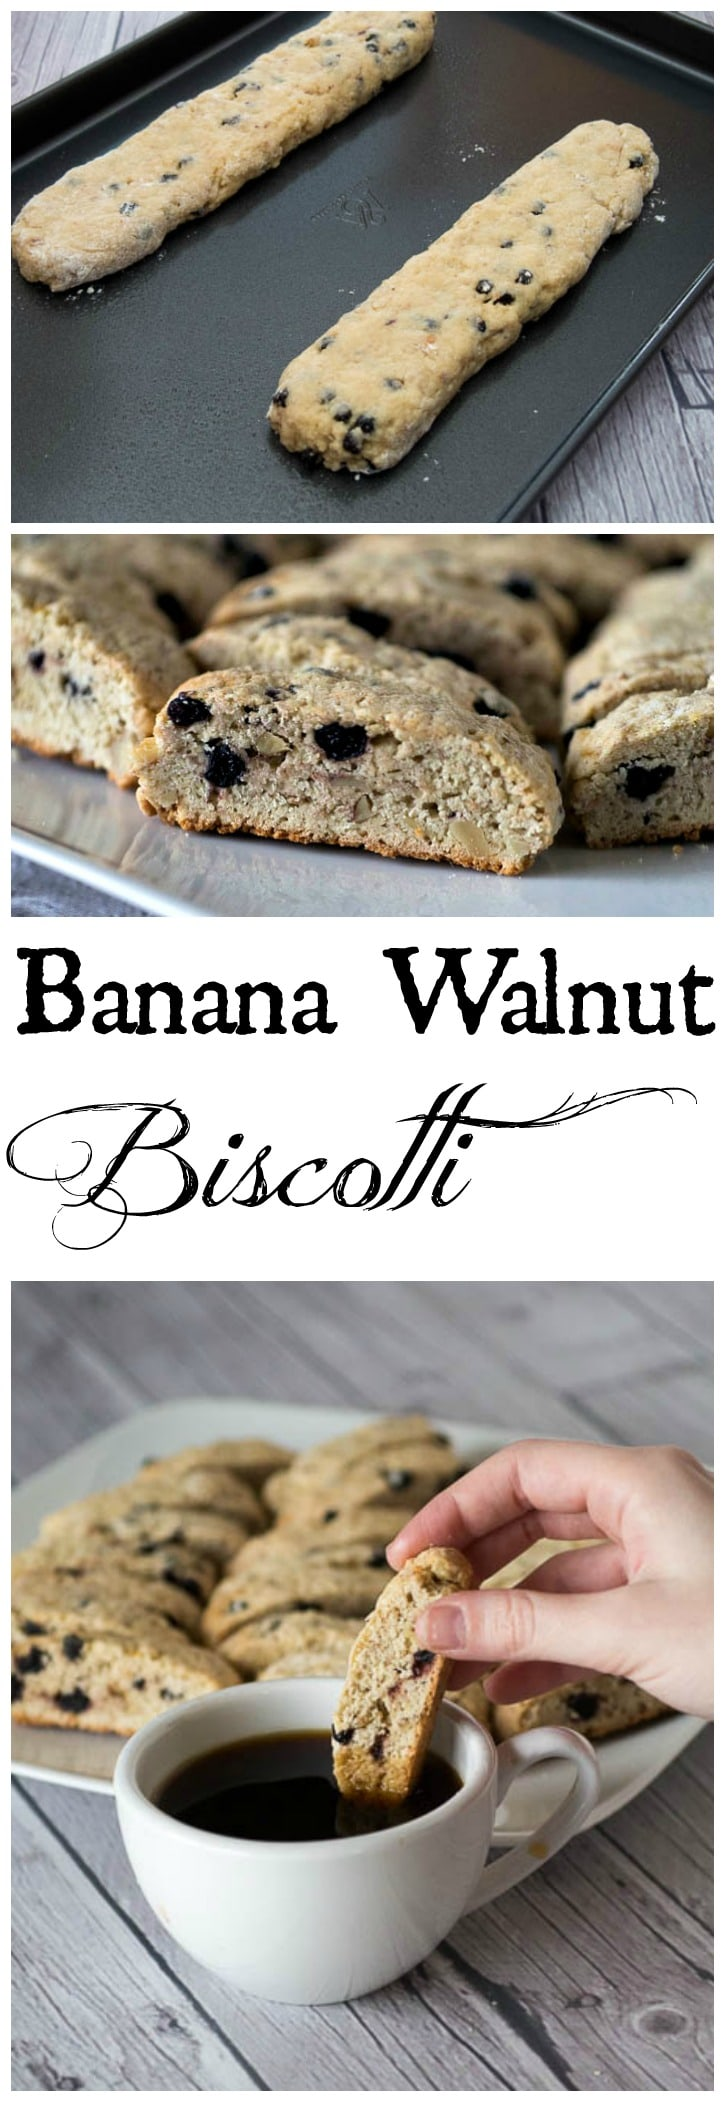 This easy Banana Walnut Biscotti is the perfect crunchy cookie, made with bananas, walnuts and dried blueberries.